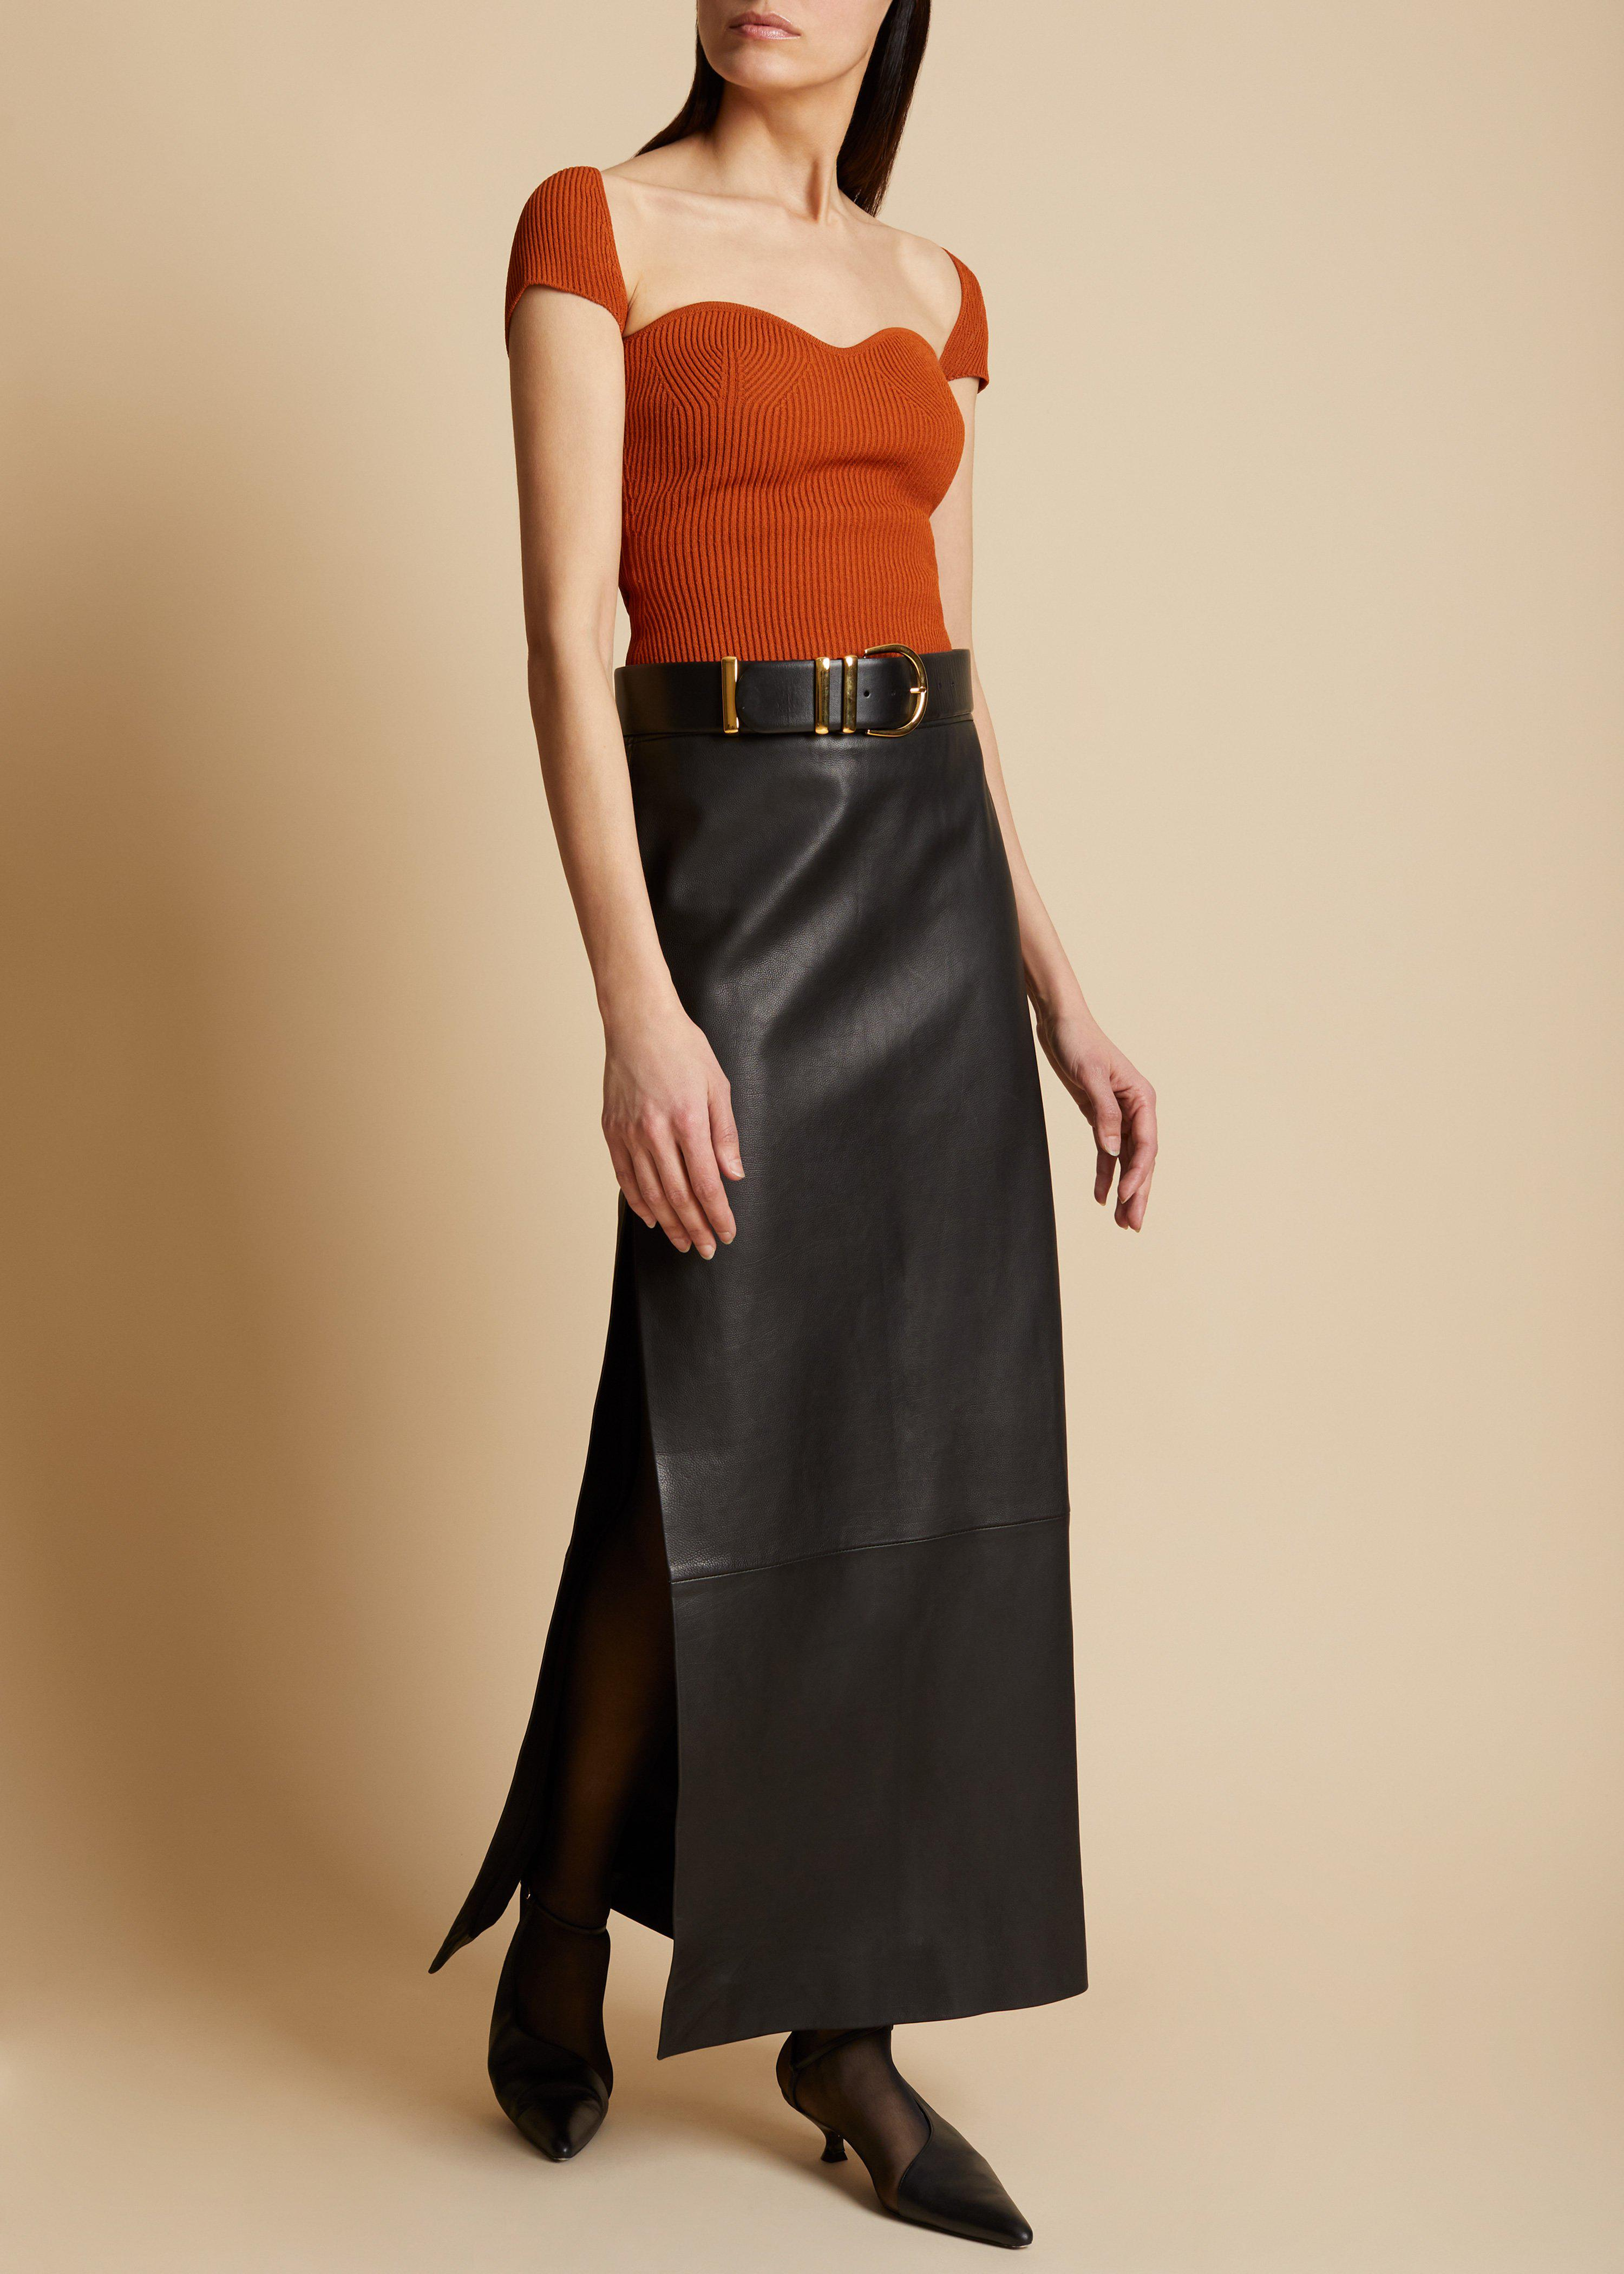 The Ista Top in Sienna 1